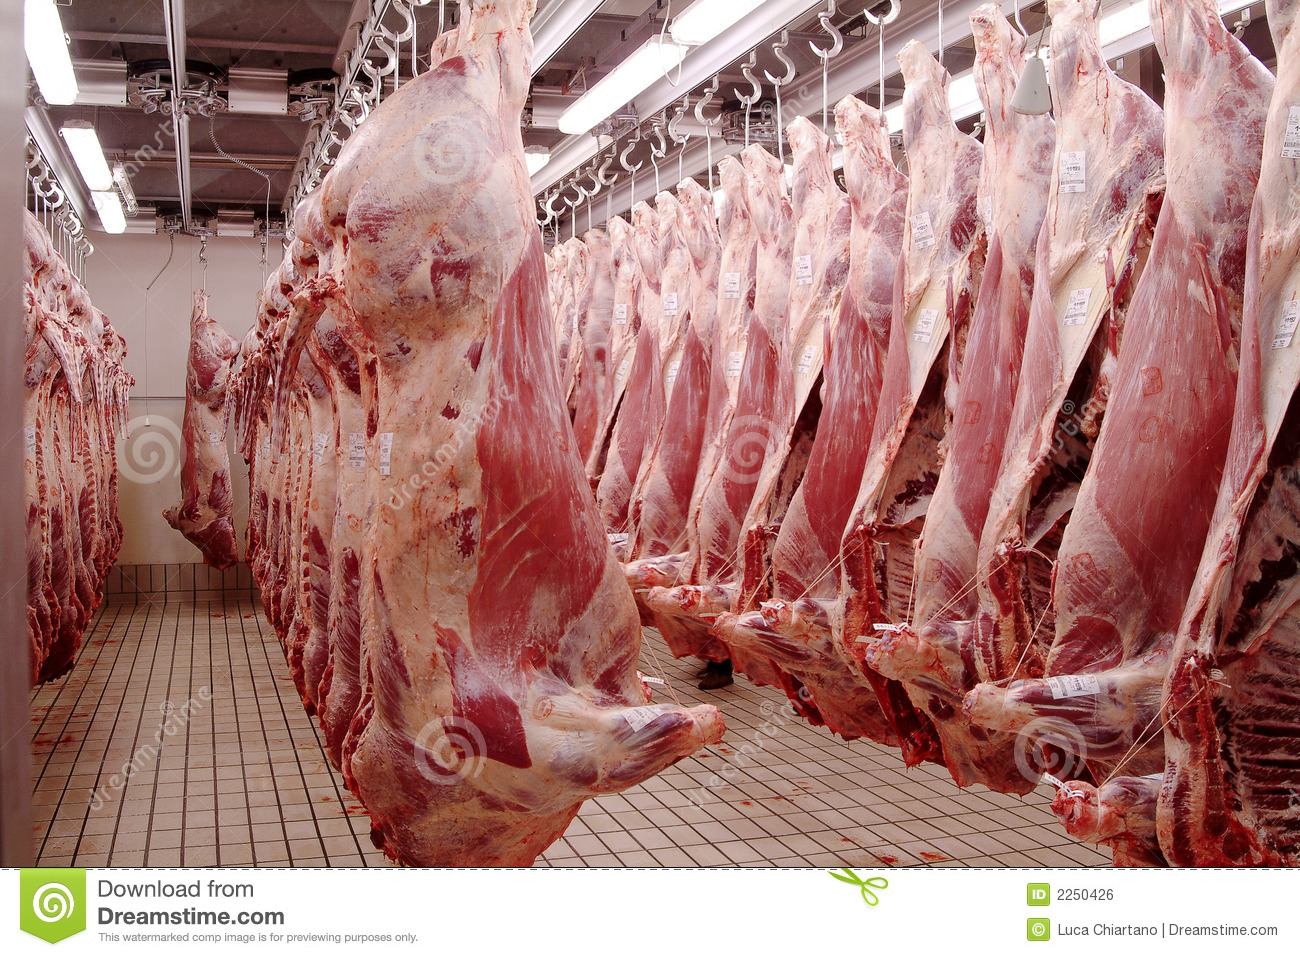 Slaughter house Macelleria Royalty Free Stock Image Image 2250426